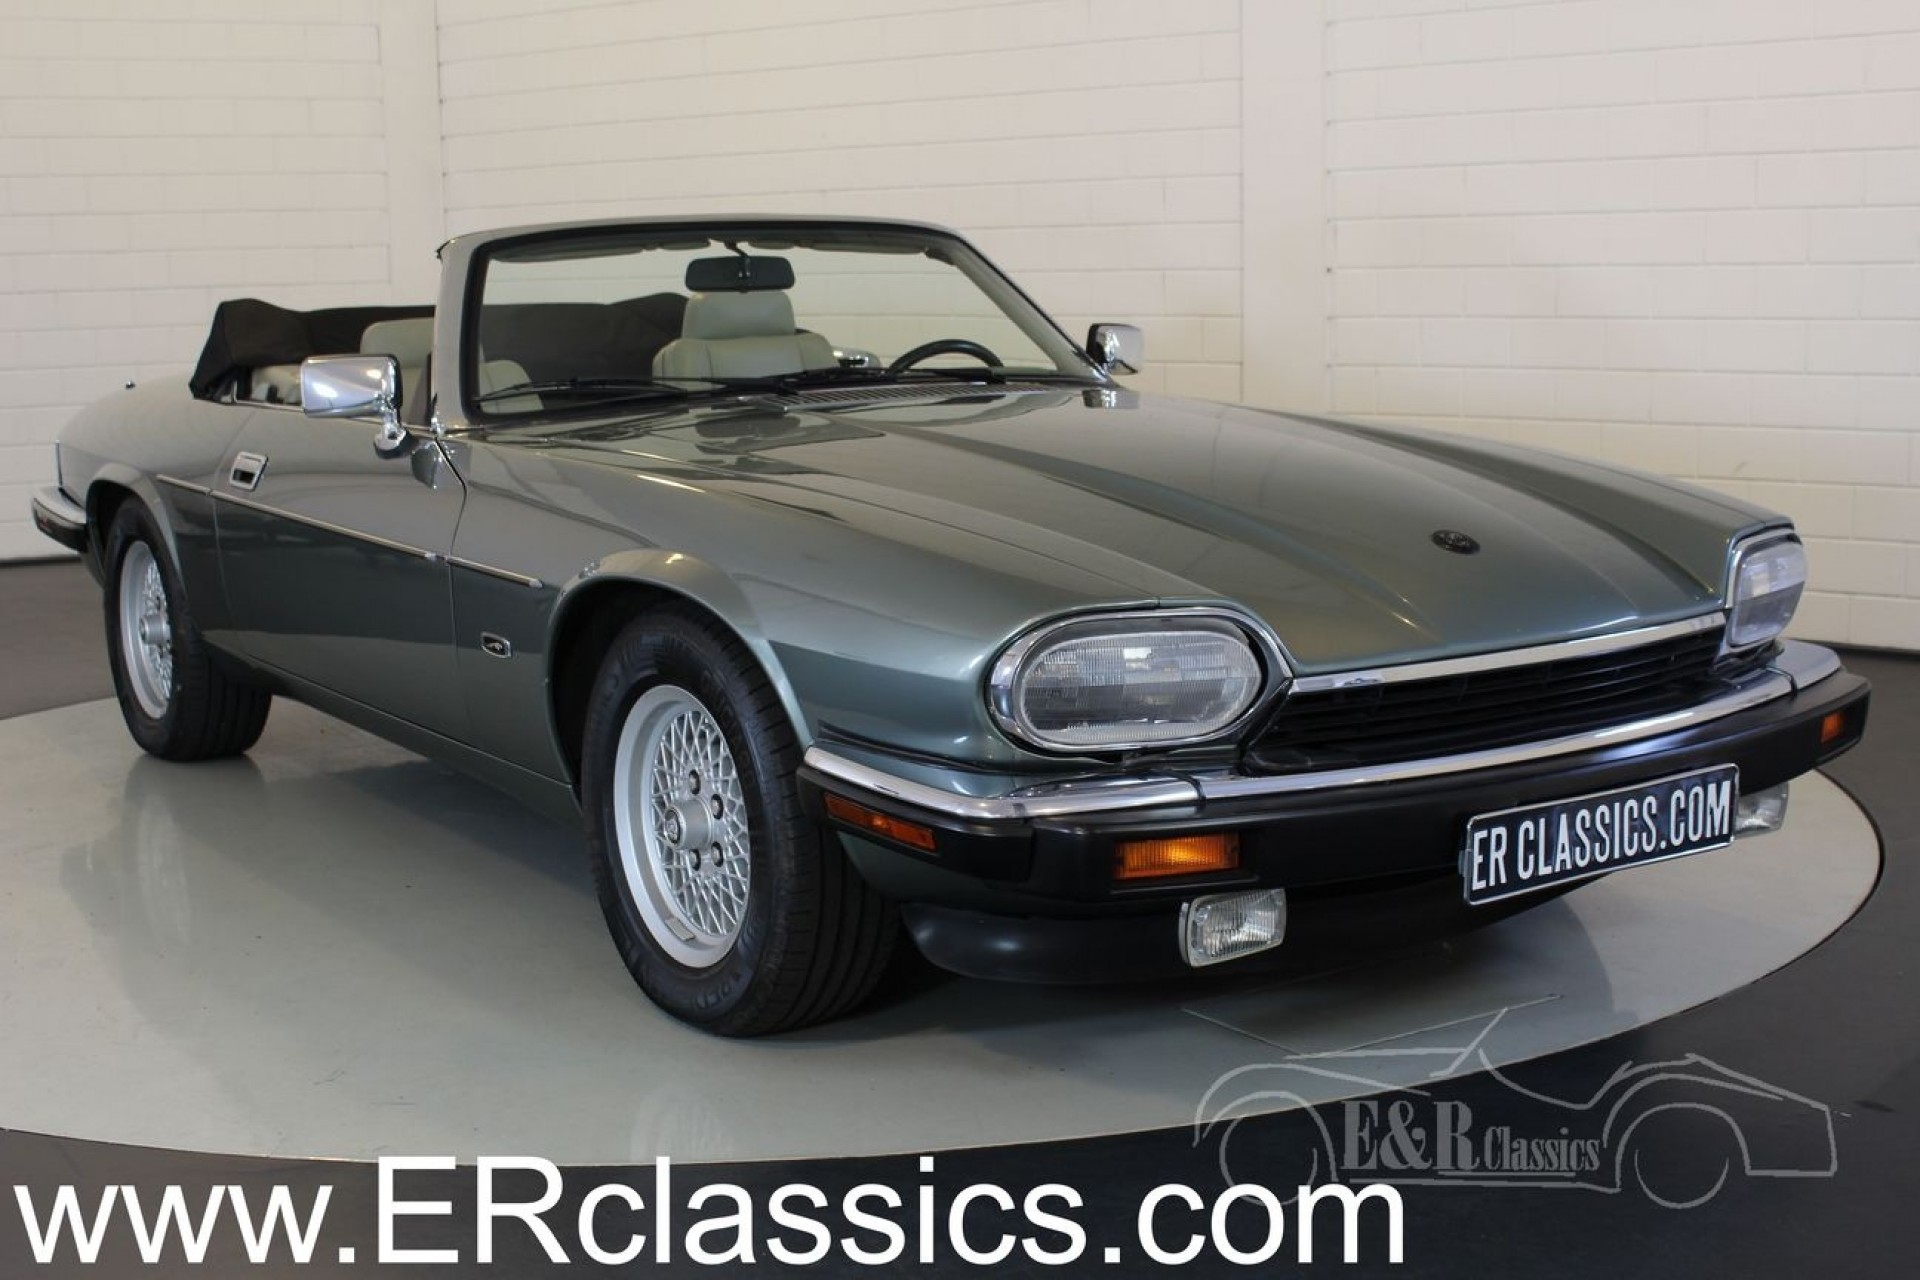 jaguar xjs cabriolet 1993 vendre erclassics. Black Bedroom Furniture Sets. Home Design Ideas